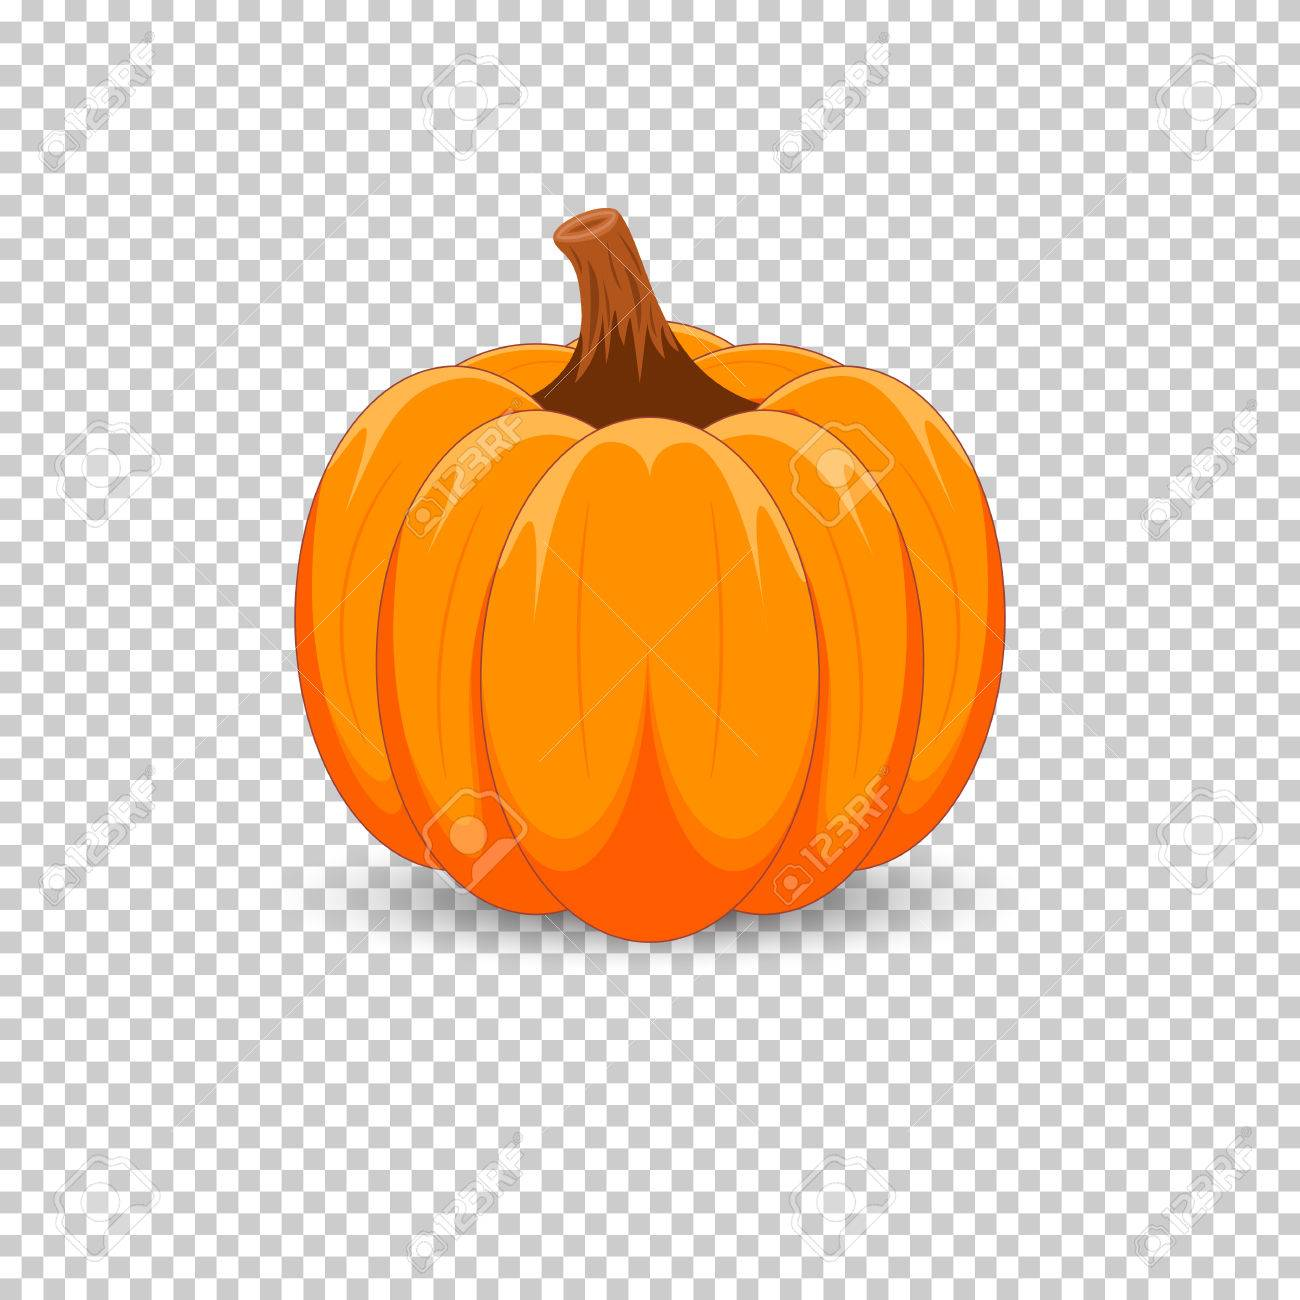 Pumpkins Transparent Background & Free Pumpkins Transparent.